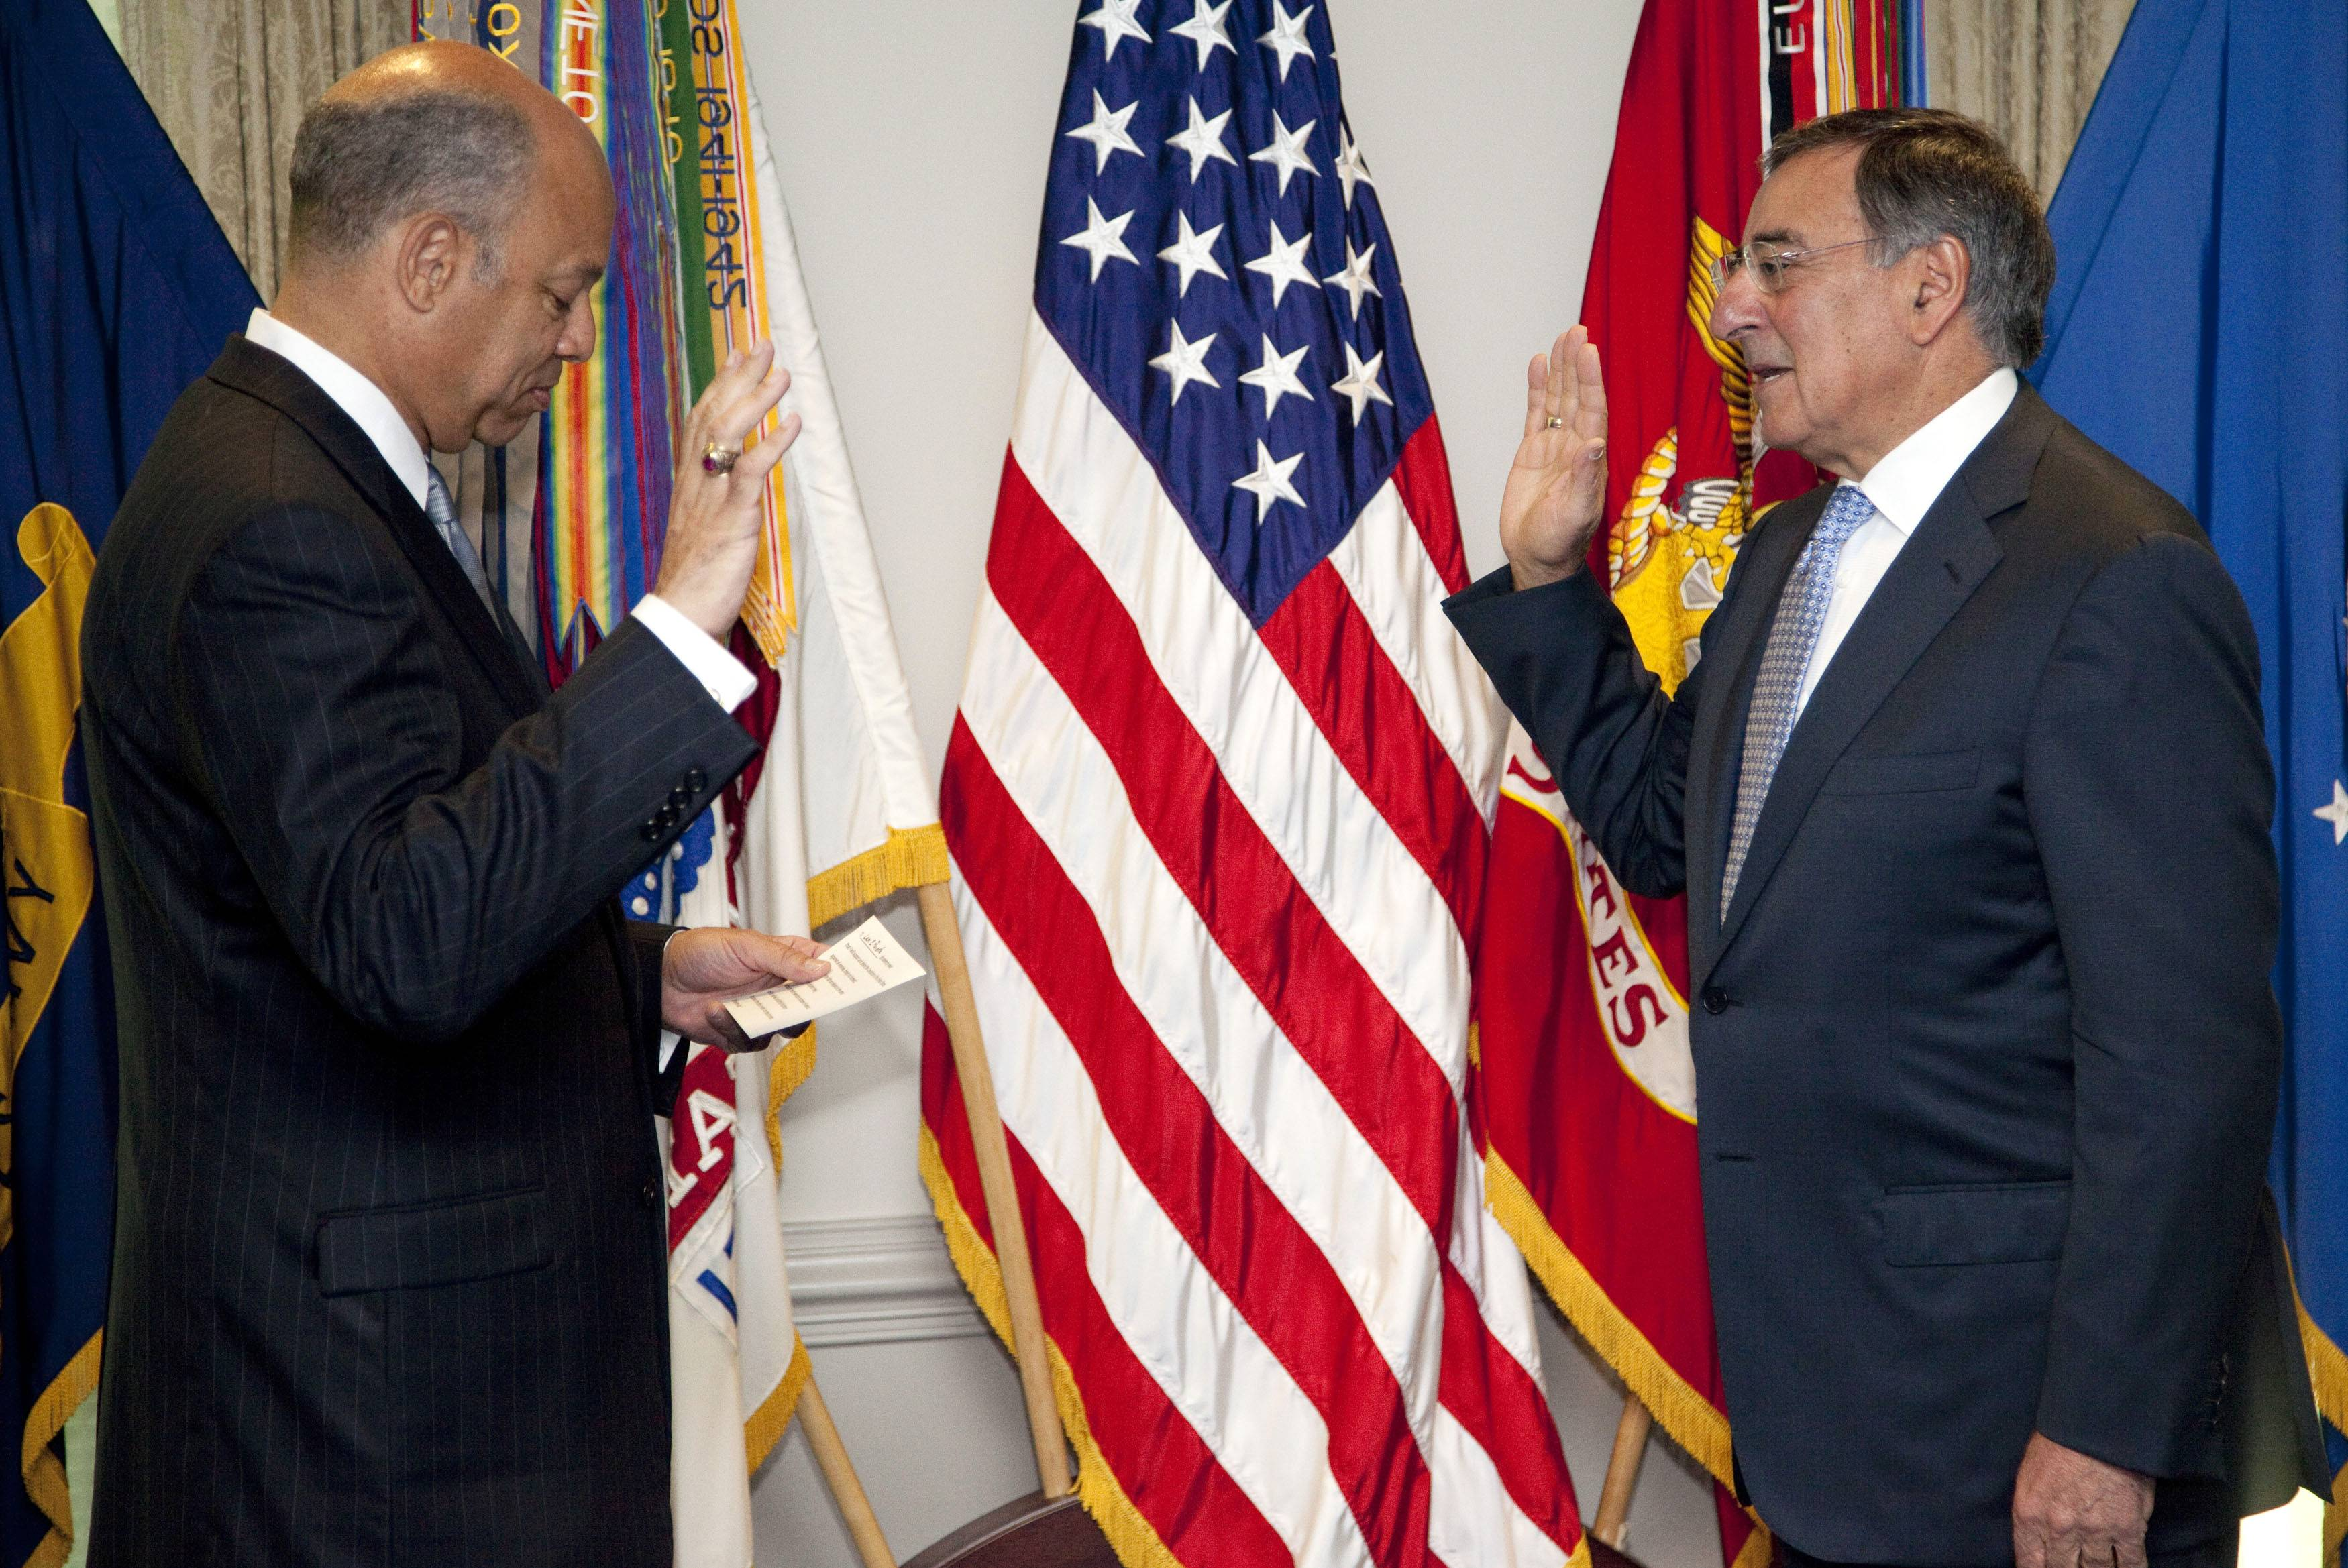 A day after stepping down as CIA director, Leon Panetta was sworn in Friday as secretary of defense.